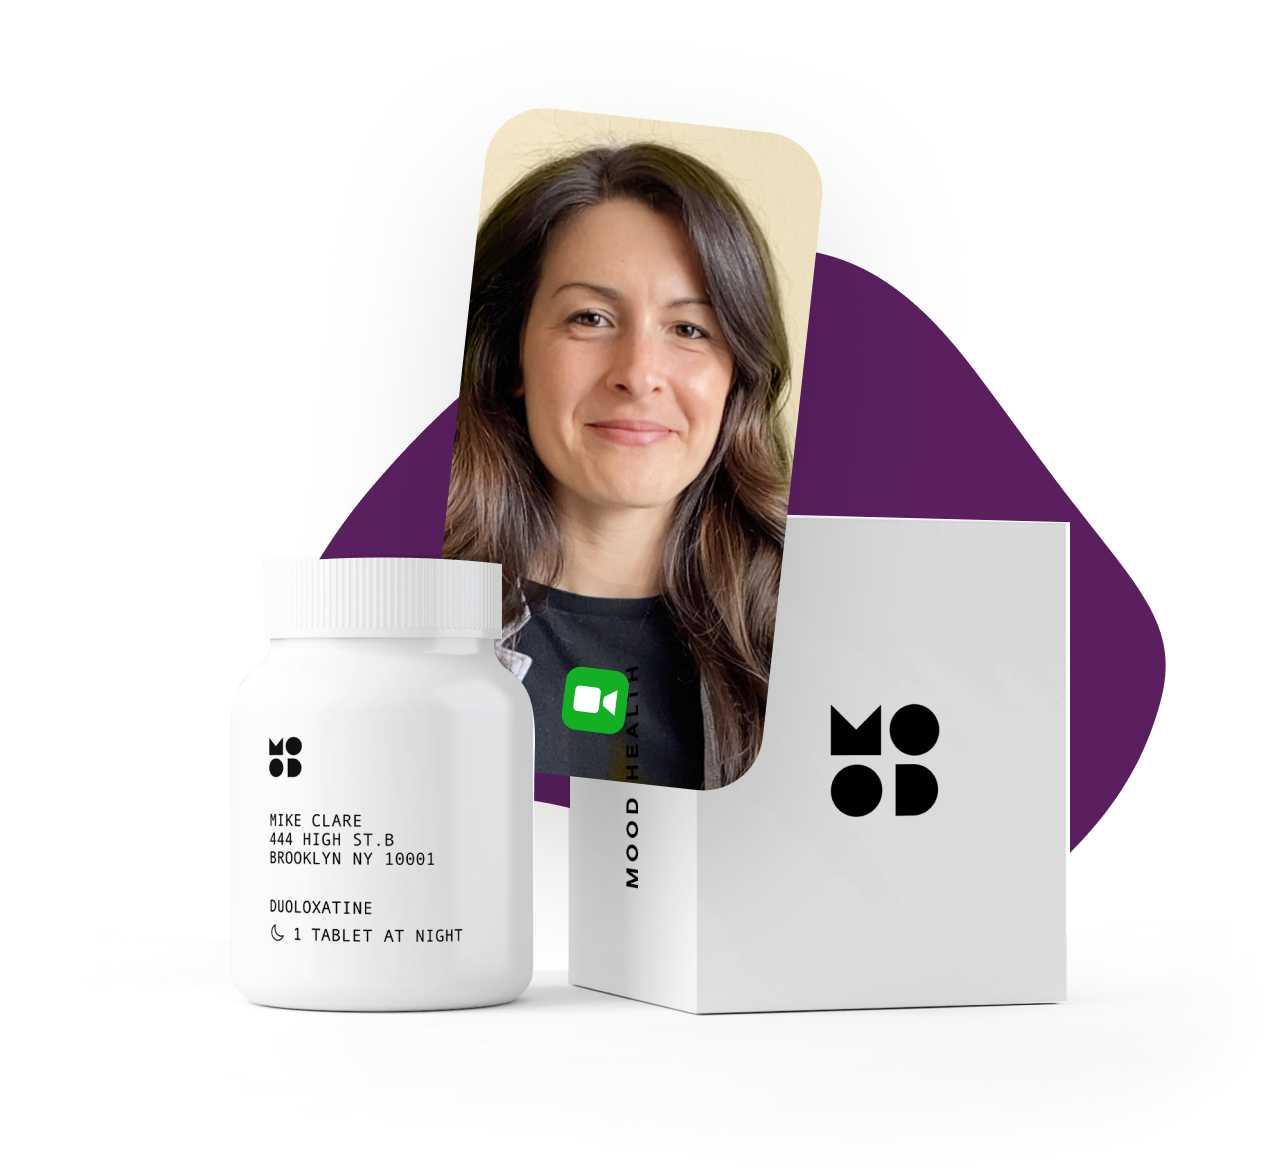 Photo of a clinician next to a pill bottle and a box with the Mood logos on them